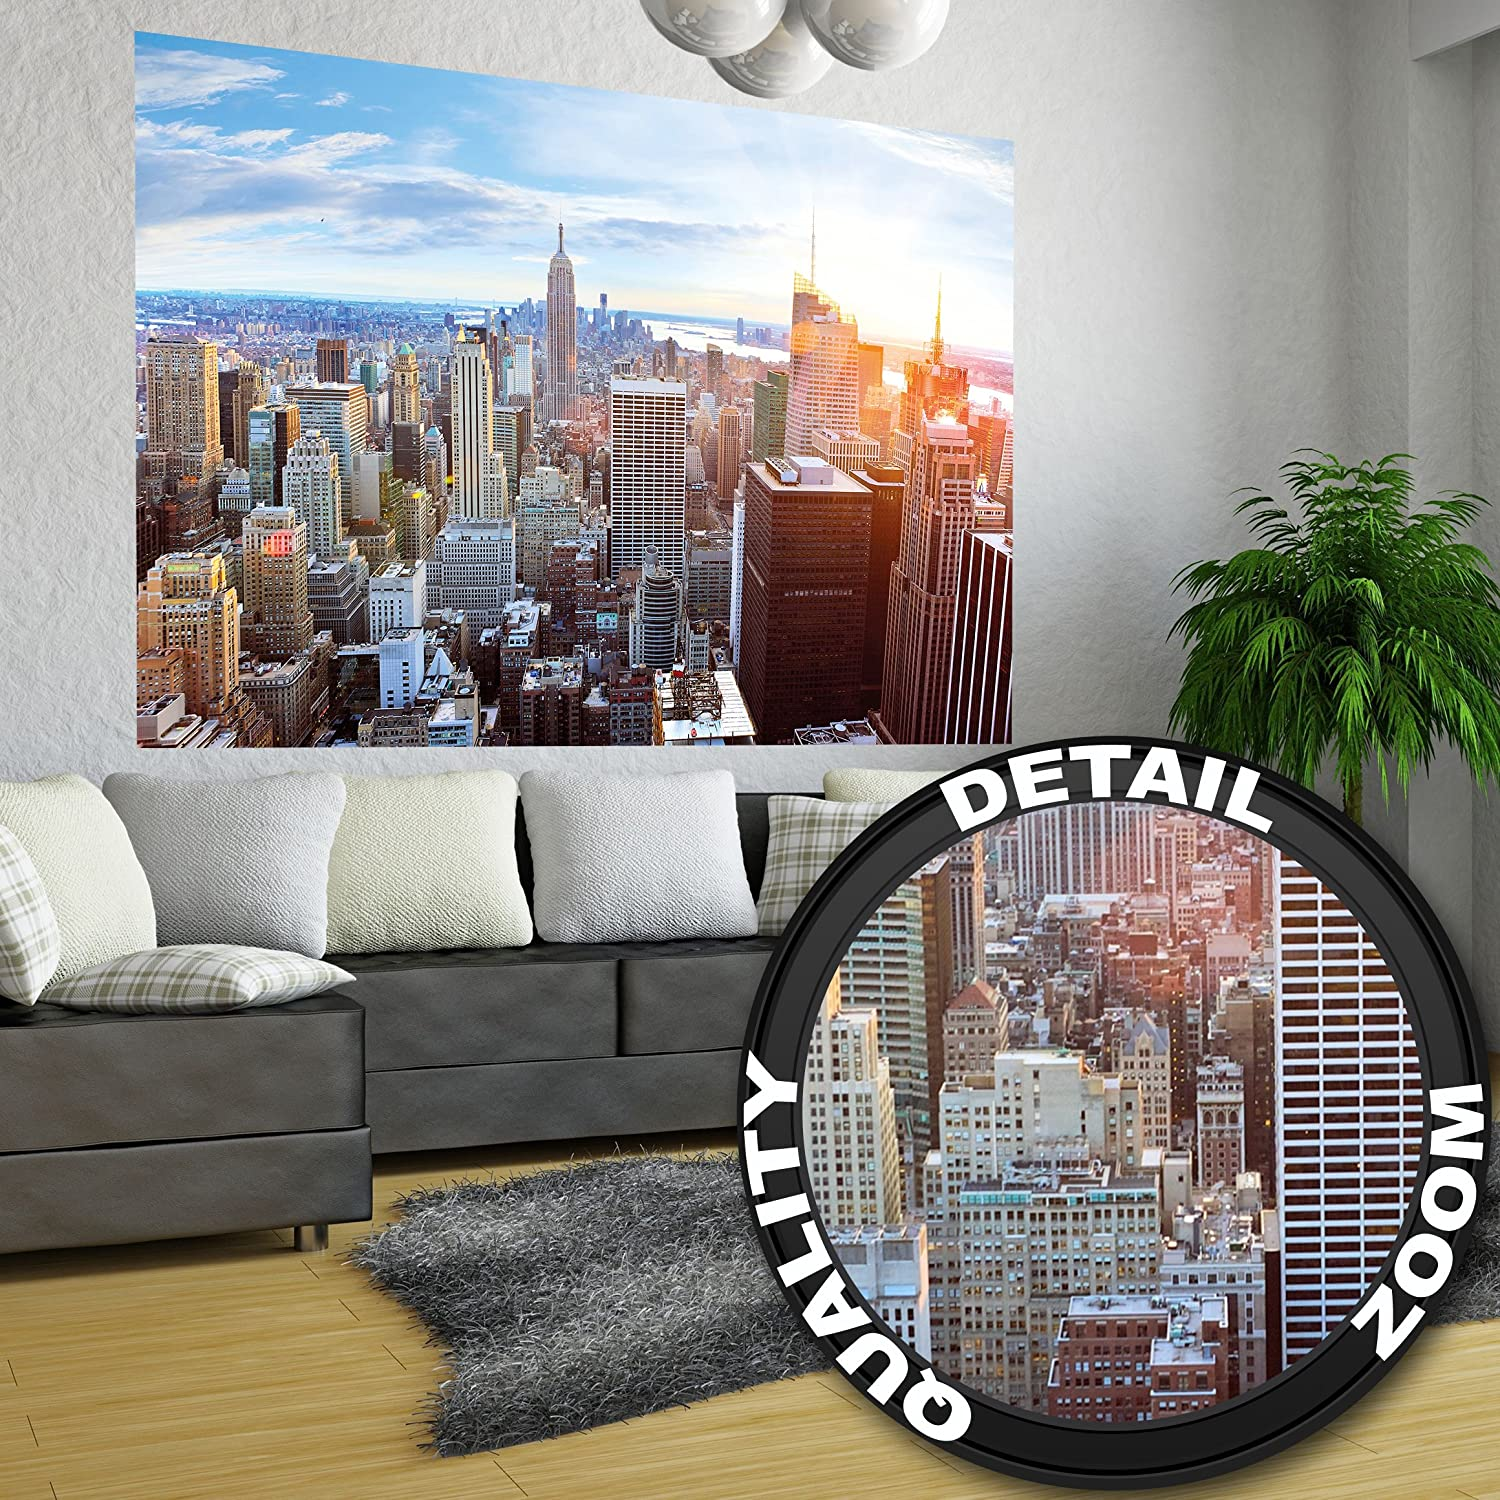 amazon com new york penthouse skyline photo wallpaper manhattan amazon com new york penthouse skyline photo wallpaper manhattan panorama view mural xxl poster new york wall decoration 55 inch x 39 4 inch home